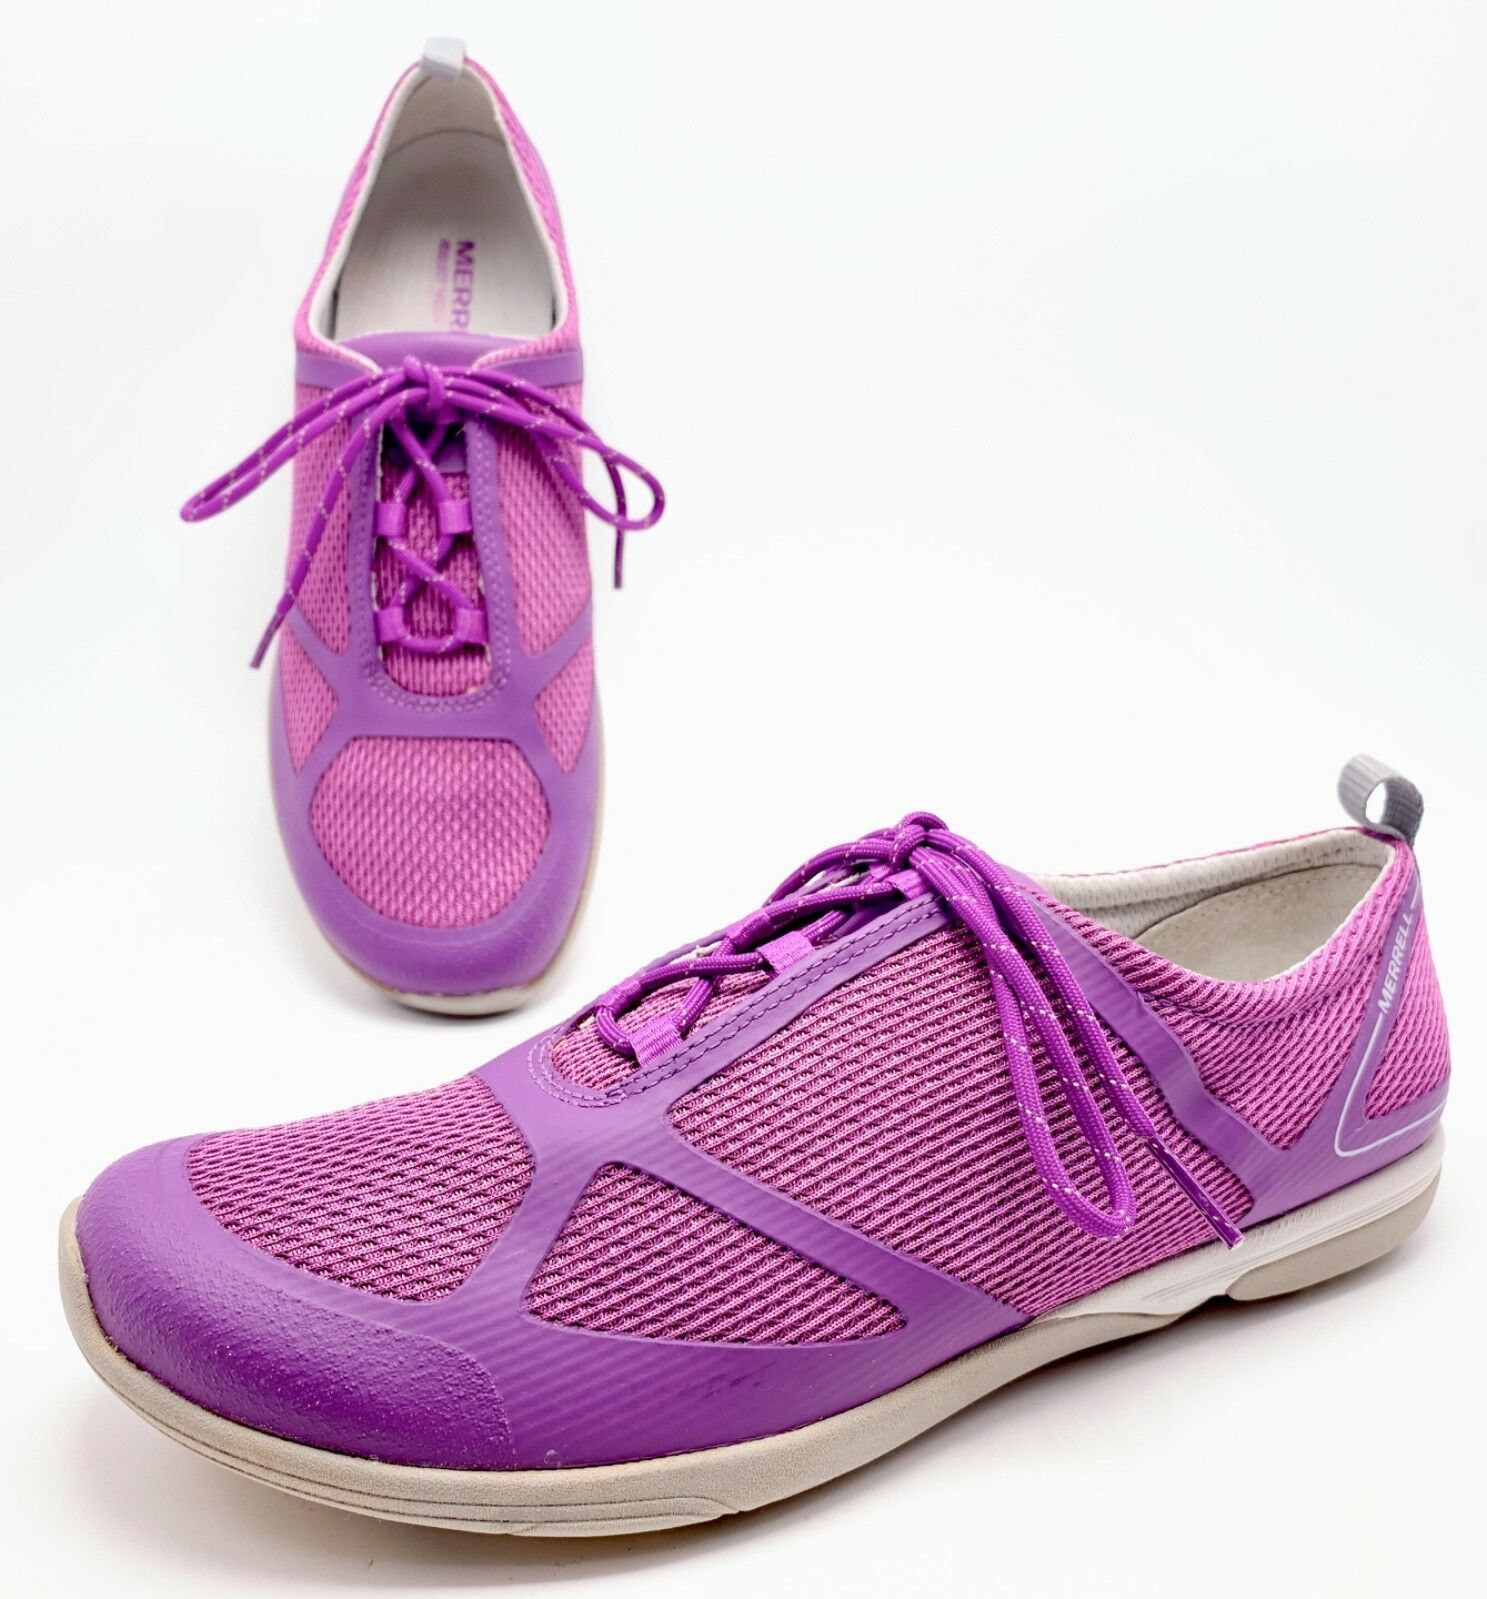 Merrell Ceylon Sport Womens 7.5 Purple Lace Up Casual Sneakers Walking shoes